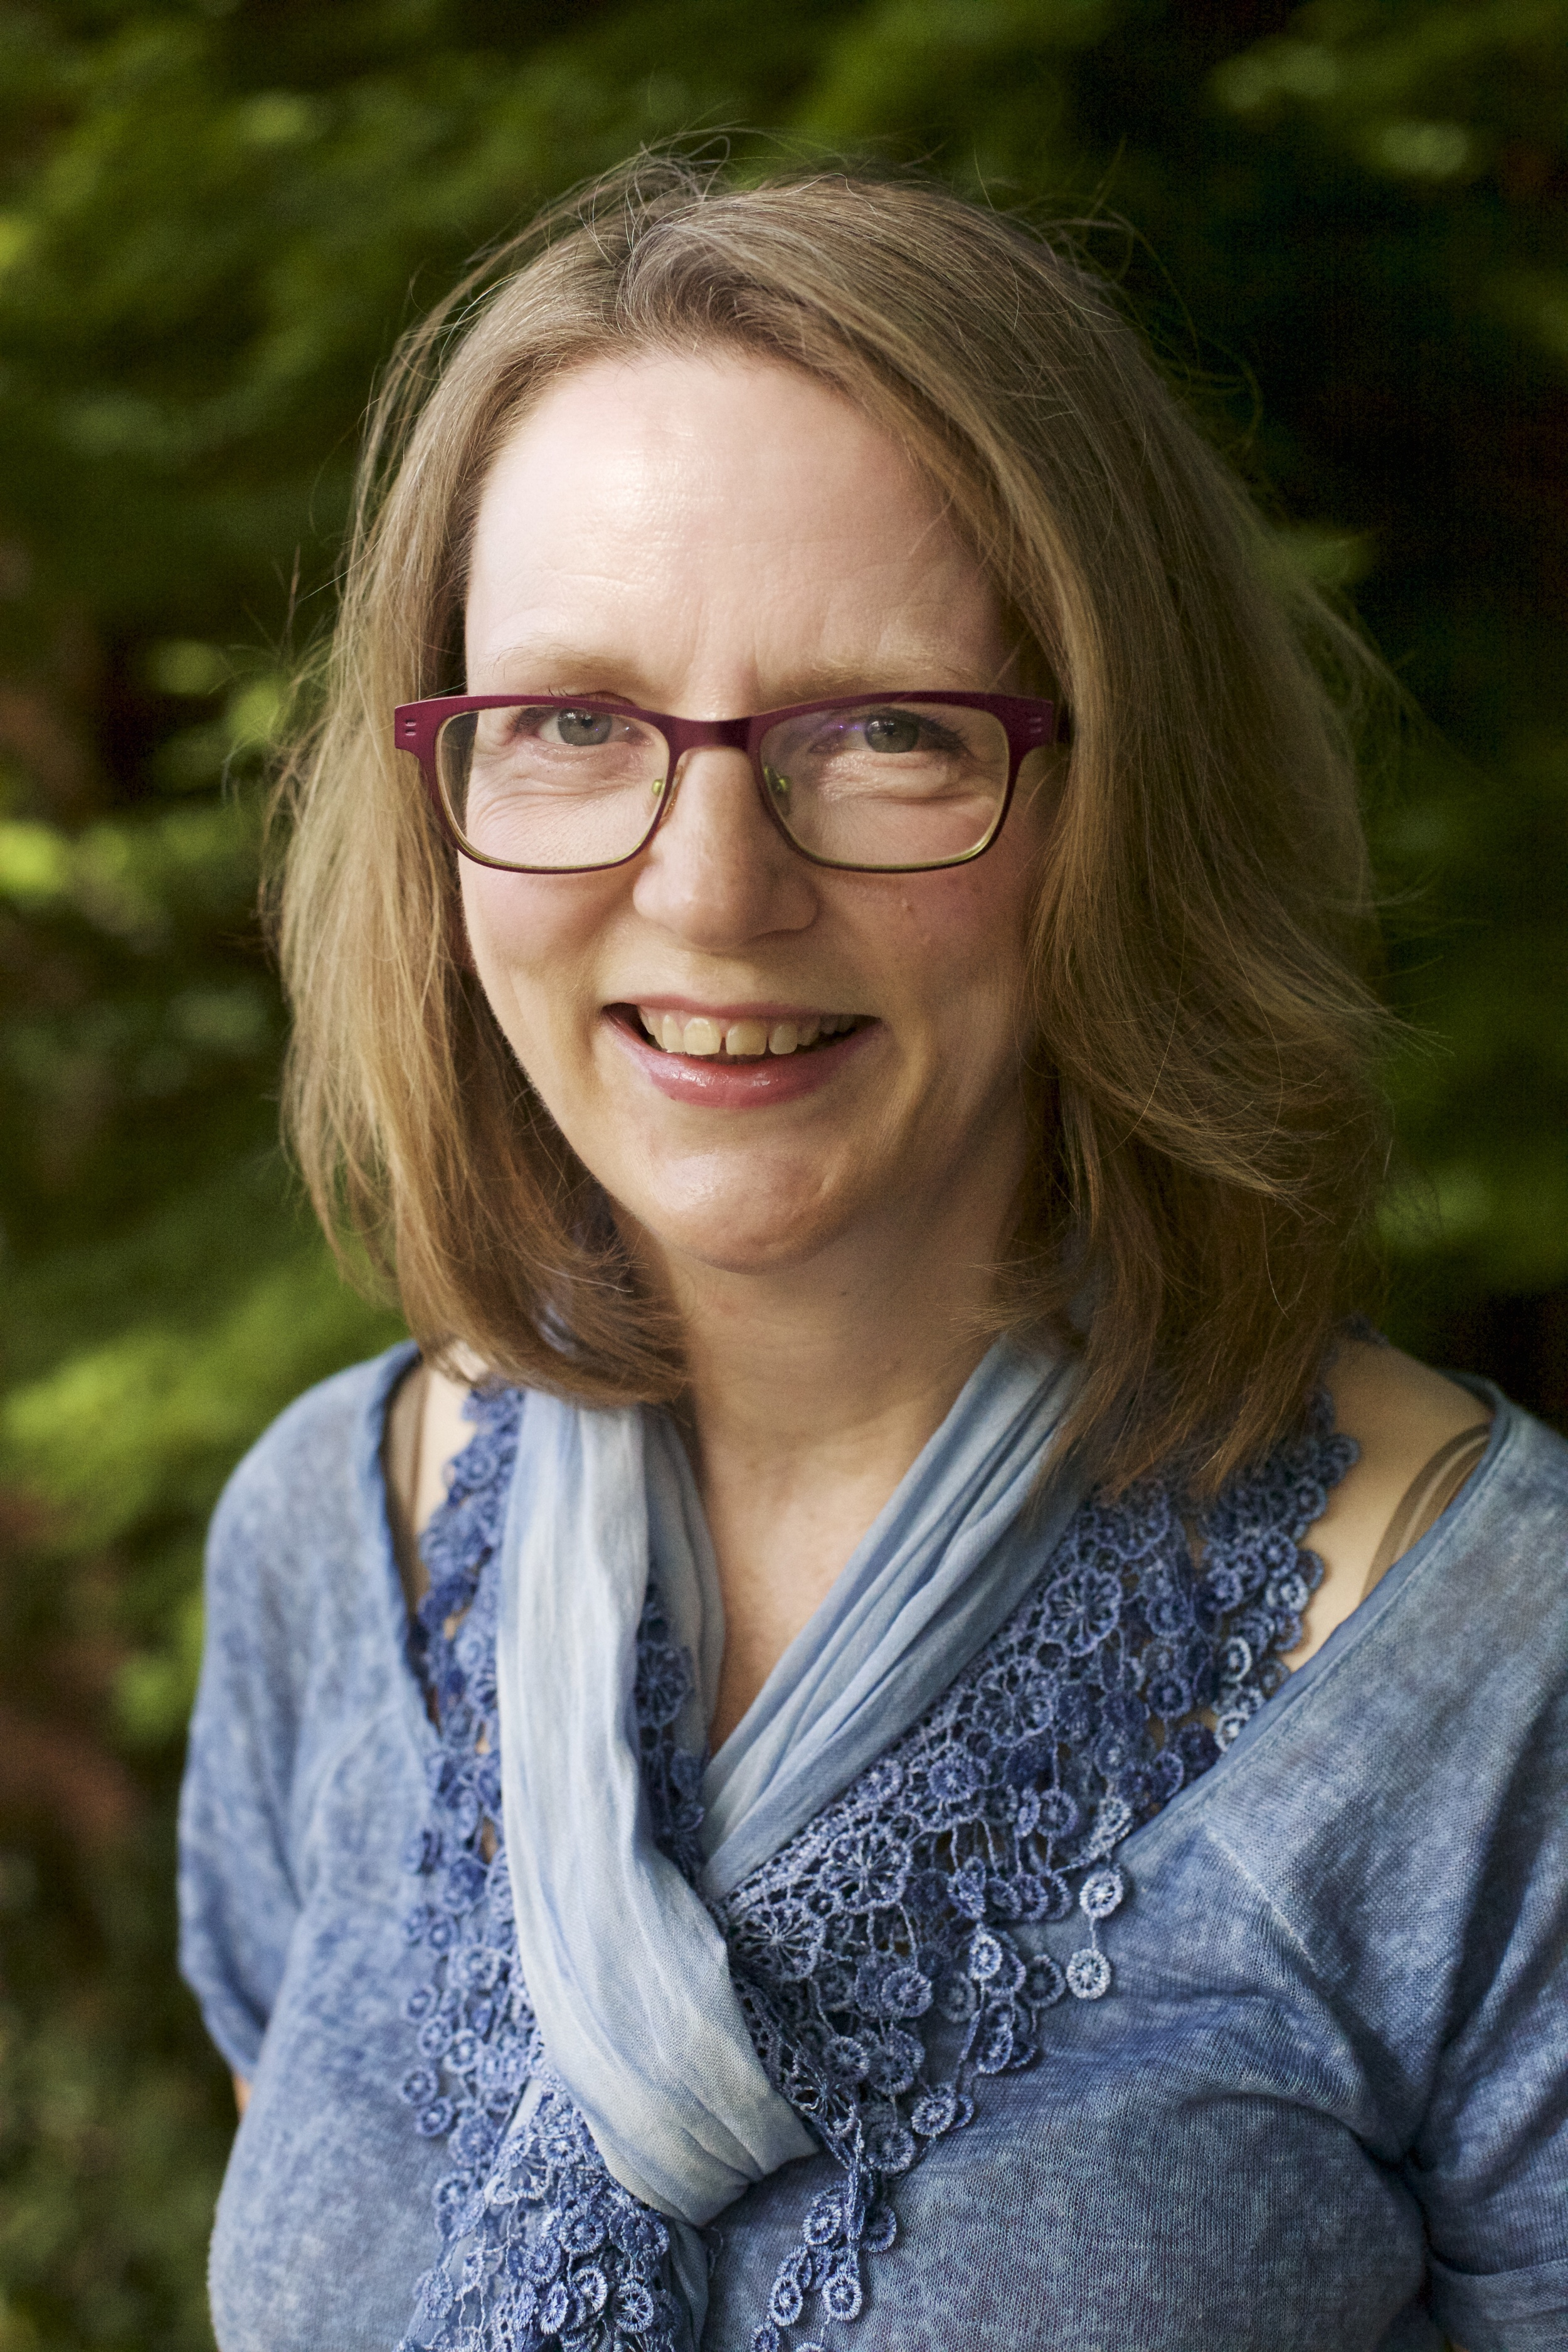 Wendy Nystrom, MA, LMHC   ∙ Children, Adolescents & Families, ages 4 and up ∙ Depression/ Anxiety ∙ Trauma ∙ Adjustment Issues ∙ Play Therapy ∙ Art/Drama/Music Therapy ∙ Animal Assisted Therapy ∙ Autism Spectrum ∙ Parenting ∙ Behavioral Issues